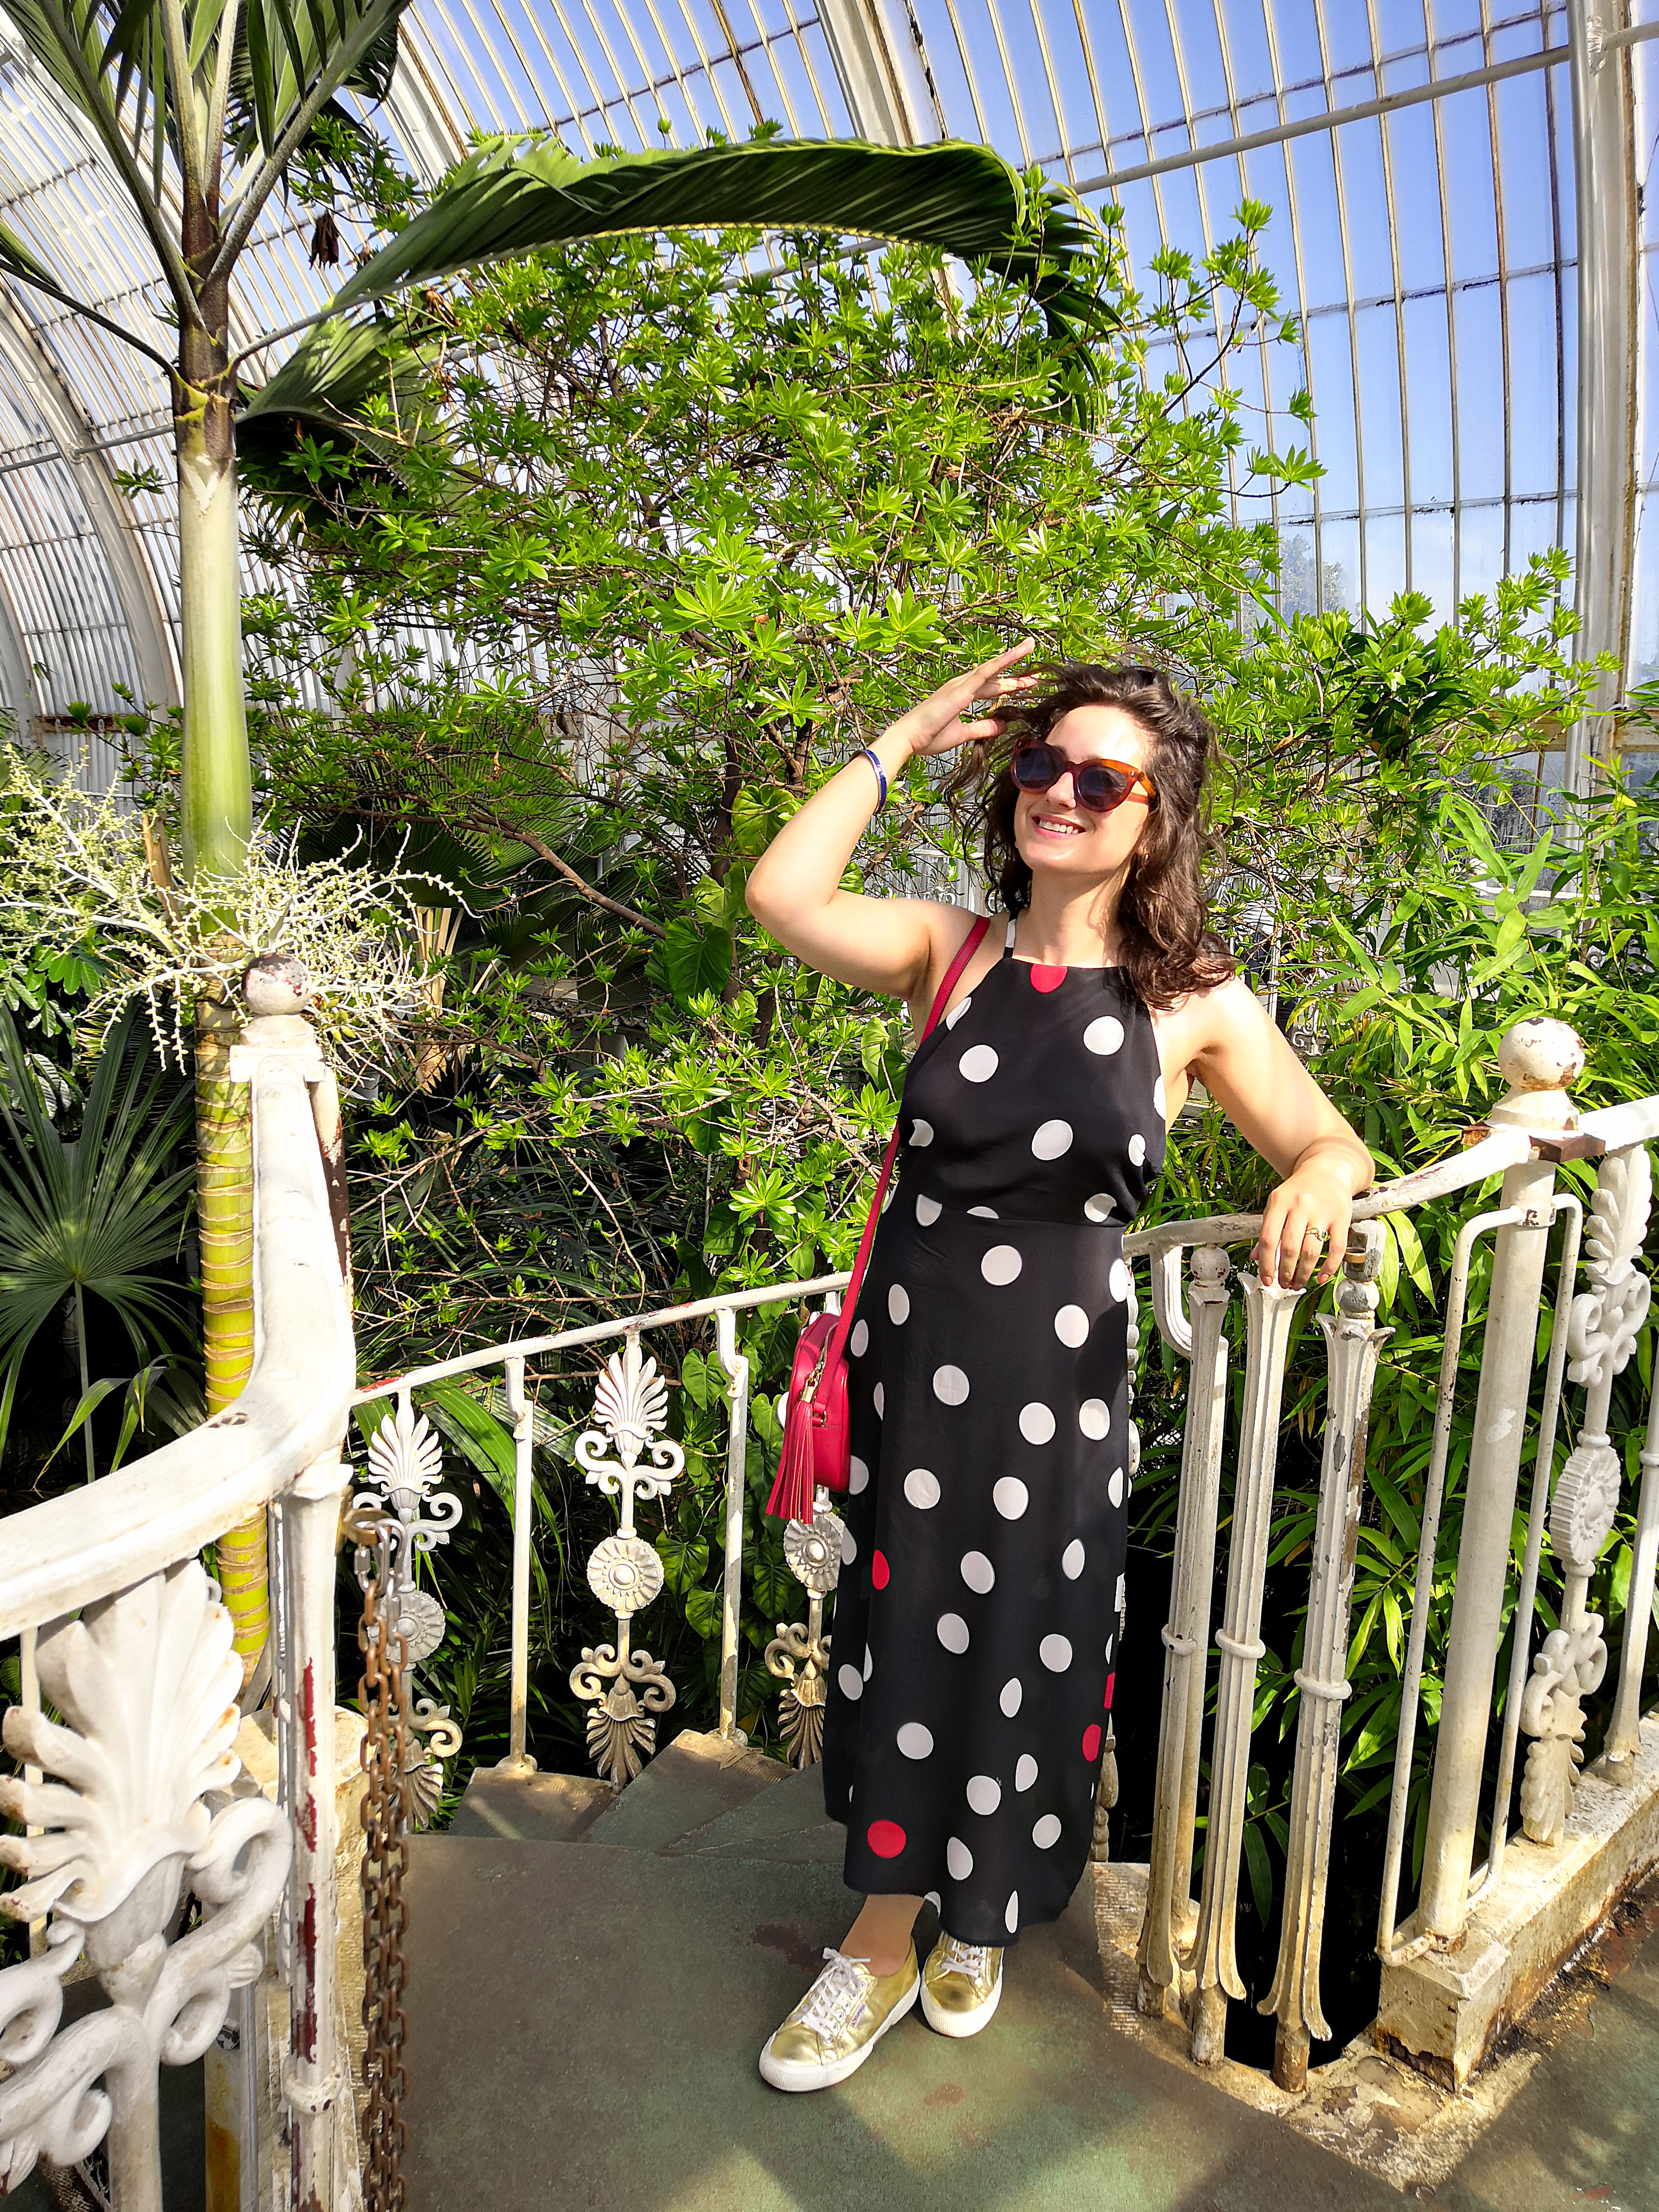 Katie is wearing a navy, white and red statement polkadot maxi dress with spaghetti straps and an open back. The photos have been taken in Kew Gardens on a sunny day and she's surrounded by plants.